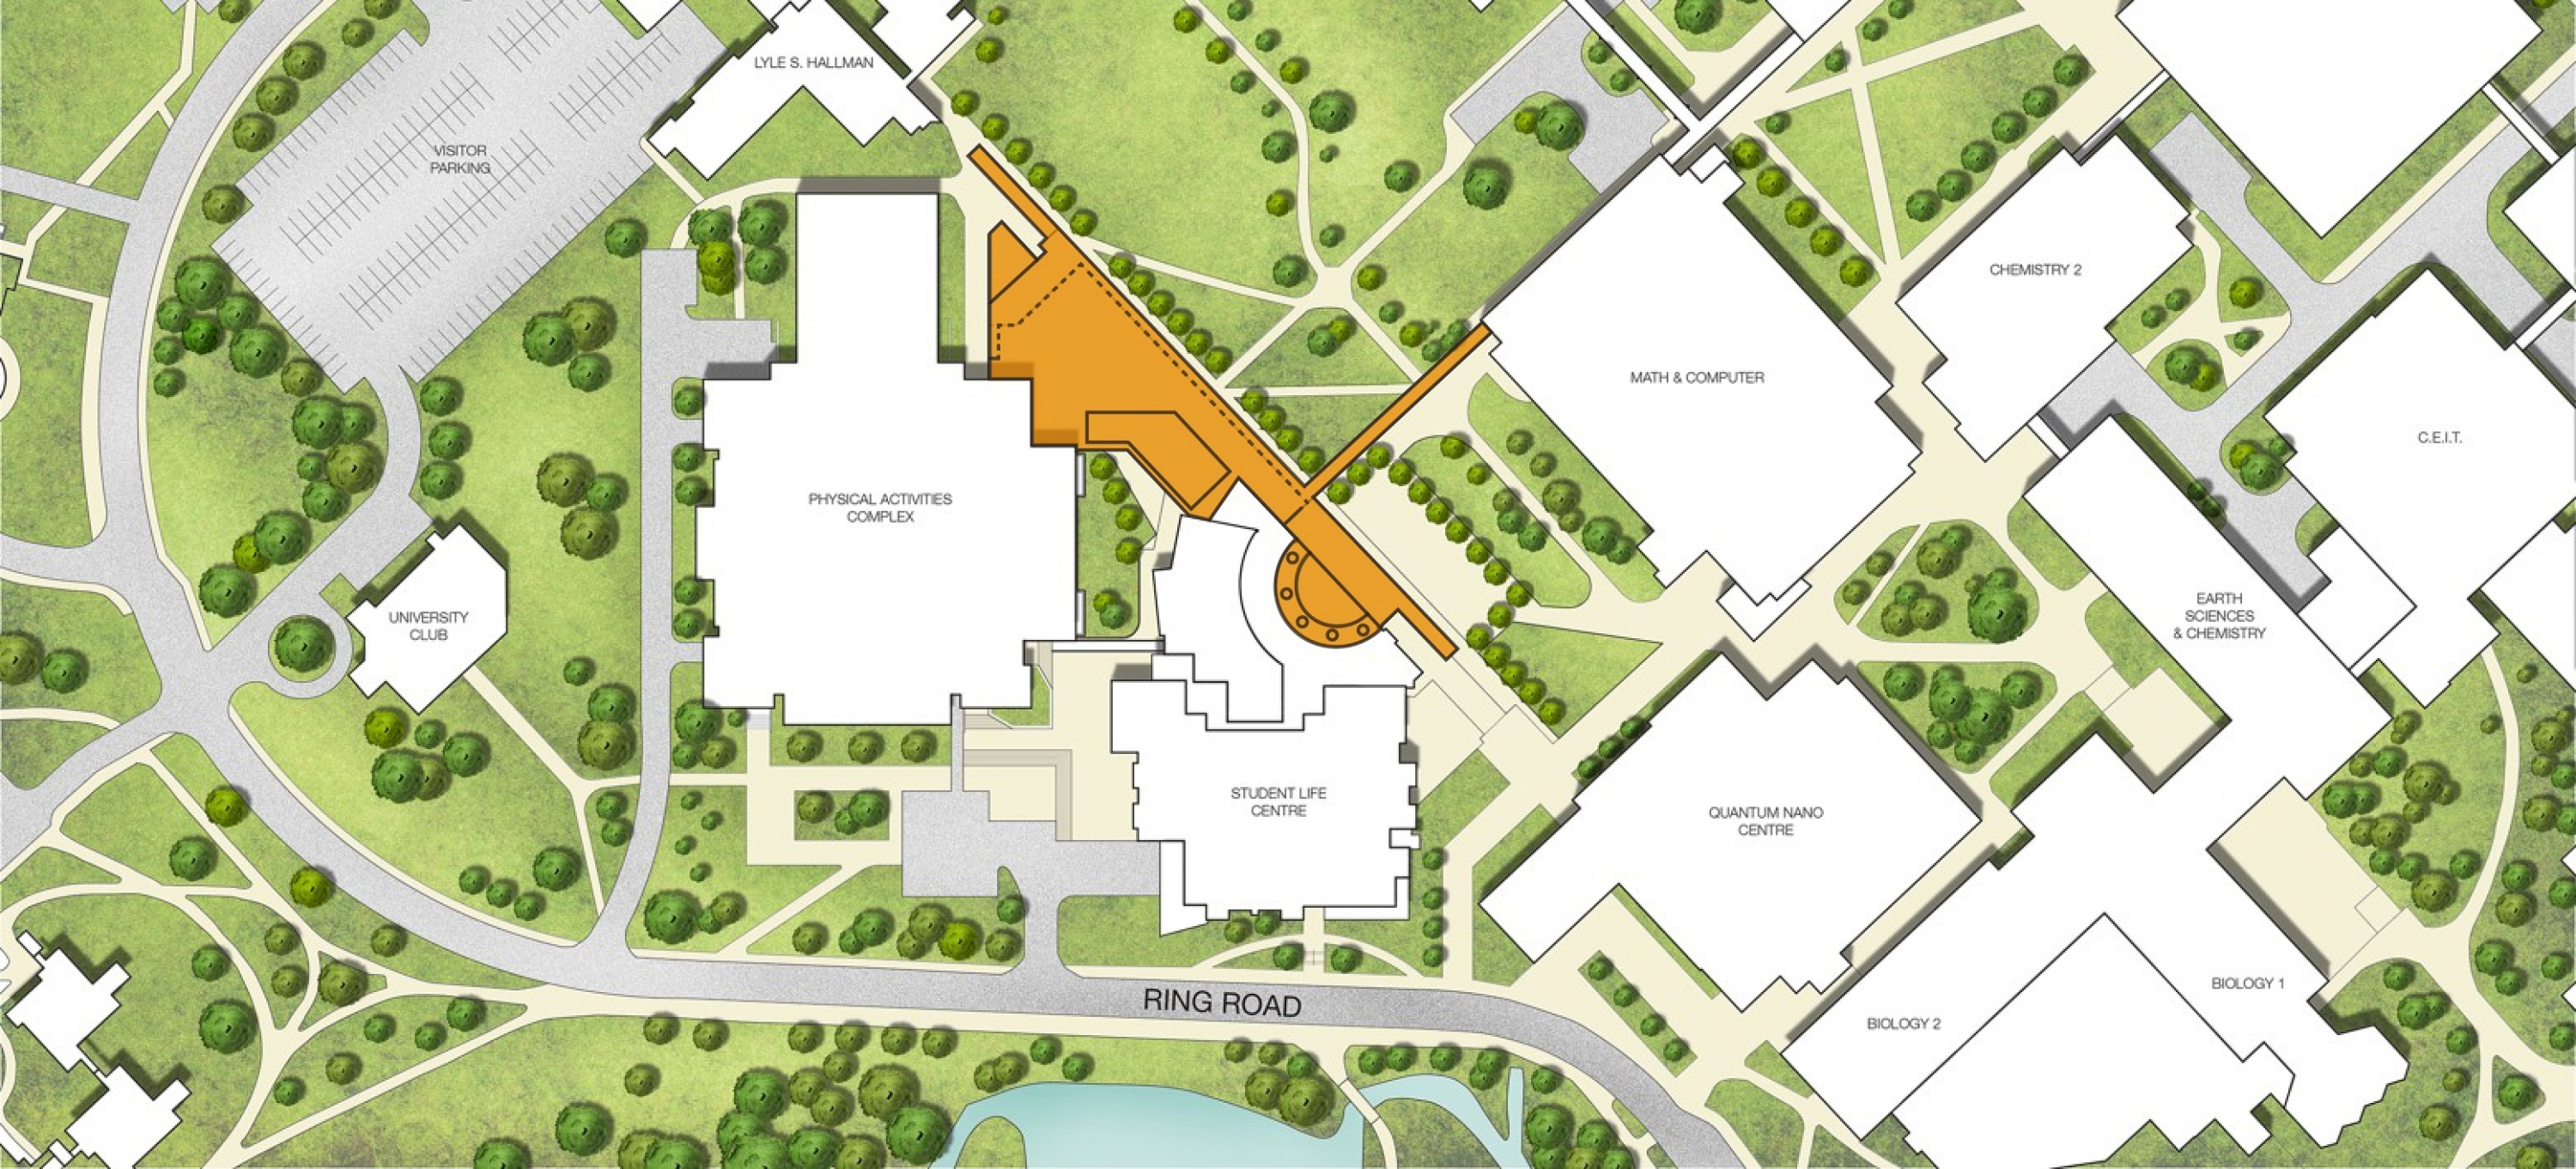 Slc Pac Expansion Project Associate Provost Students University Of Waterloo